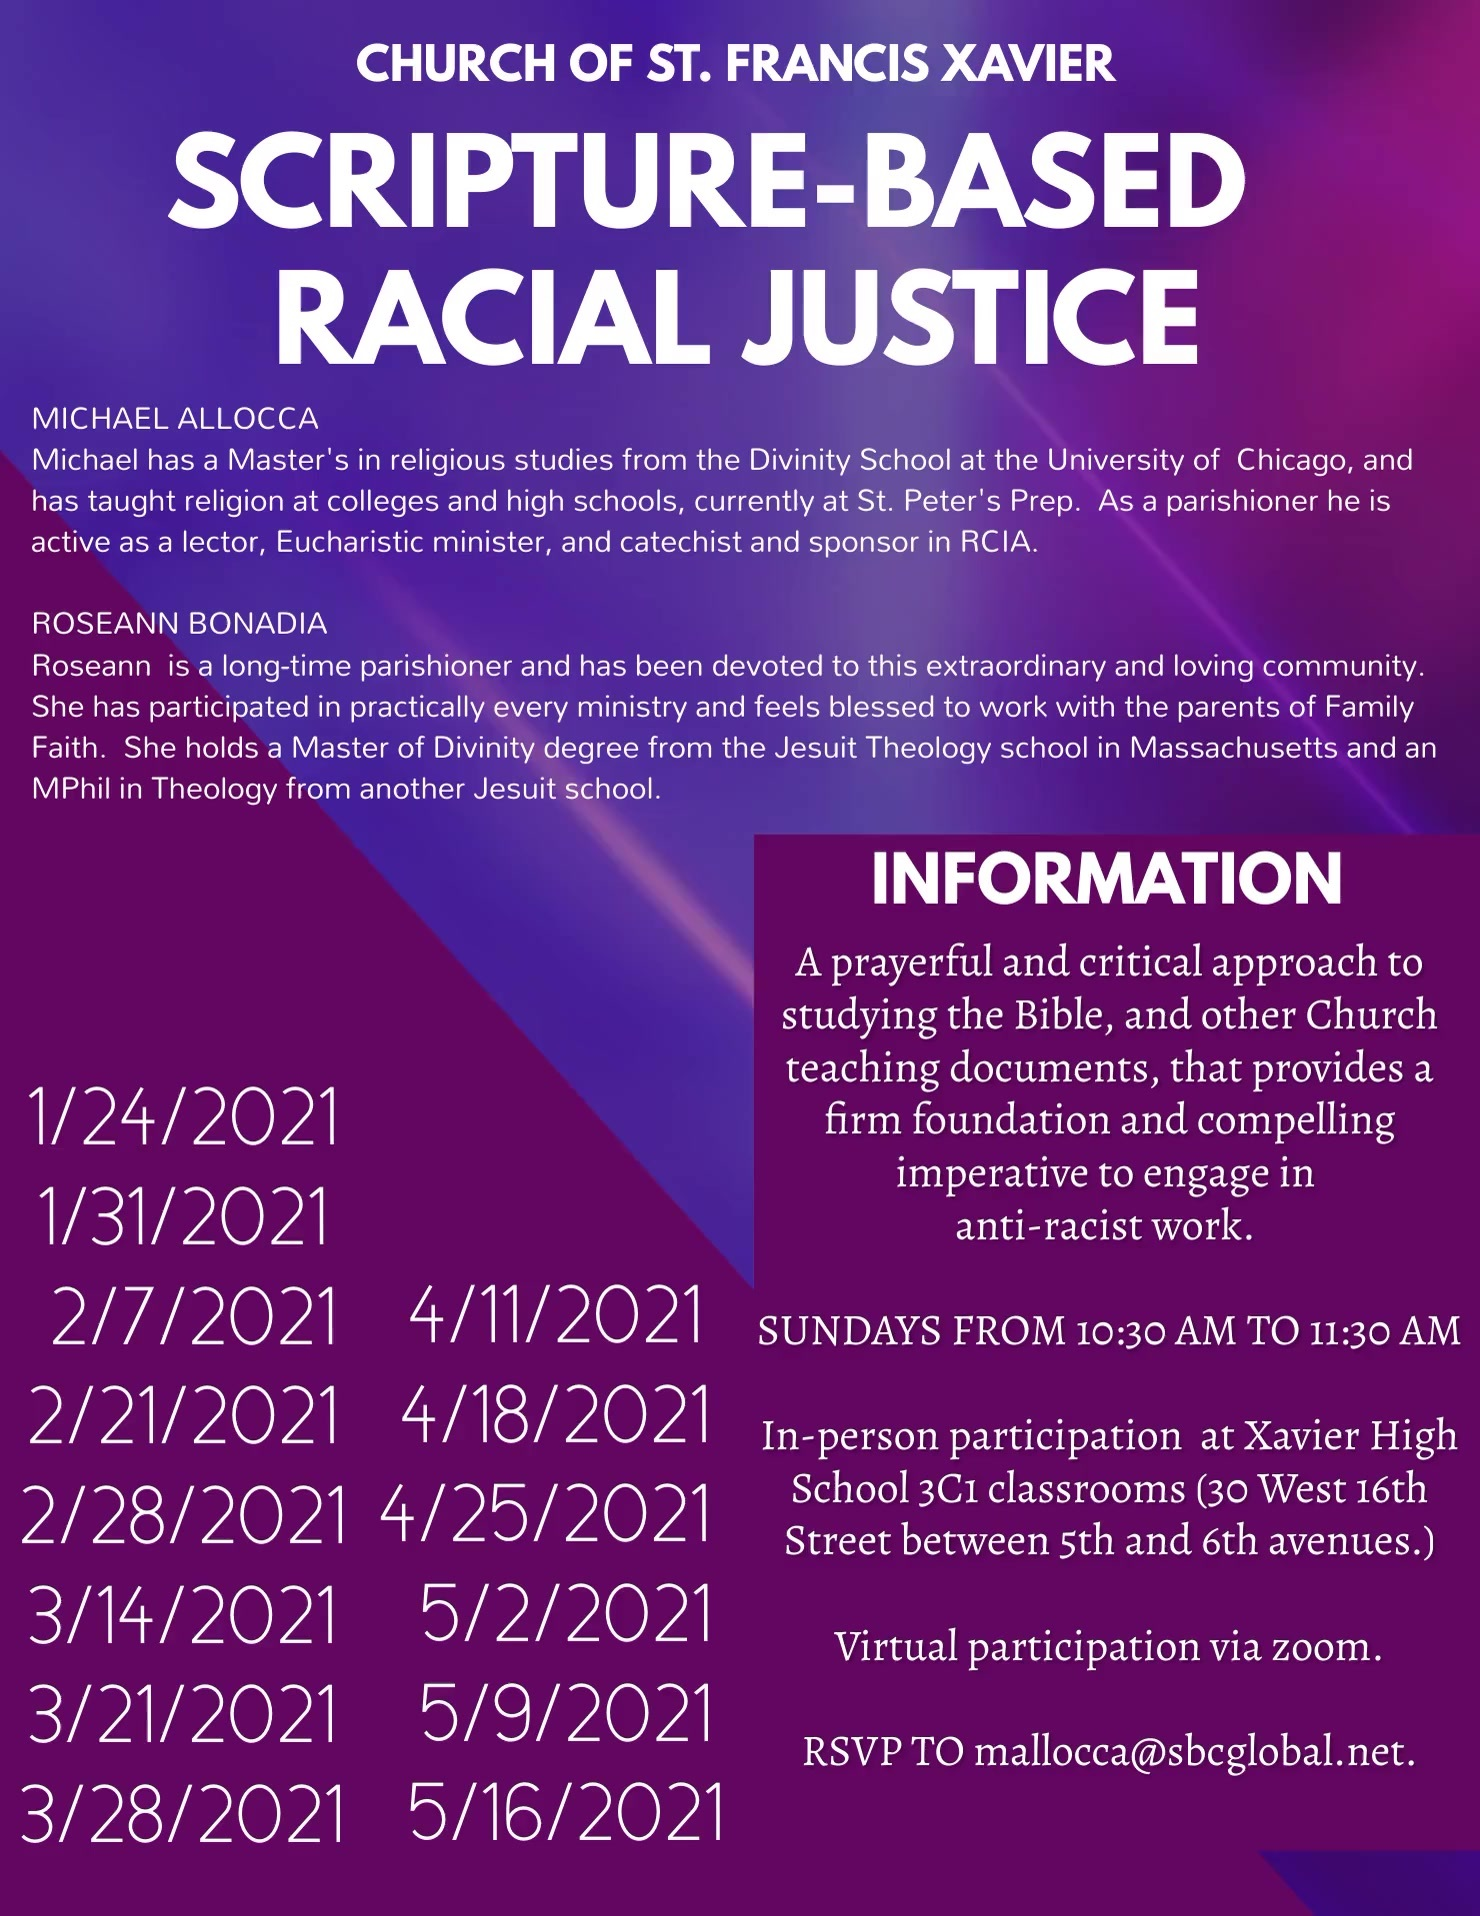 scripture-based racial justice flyer